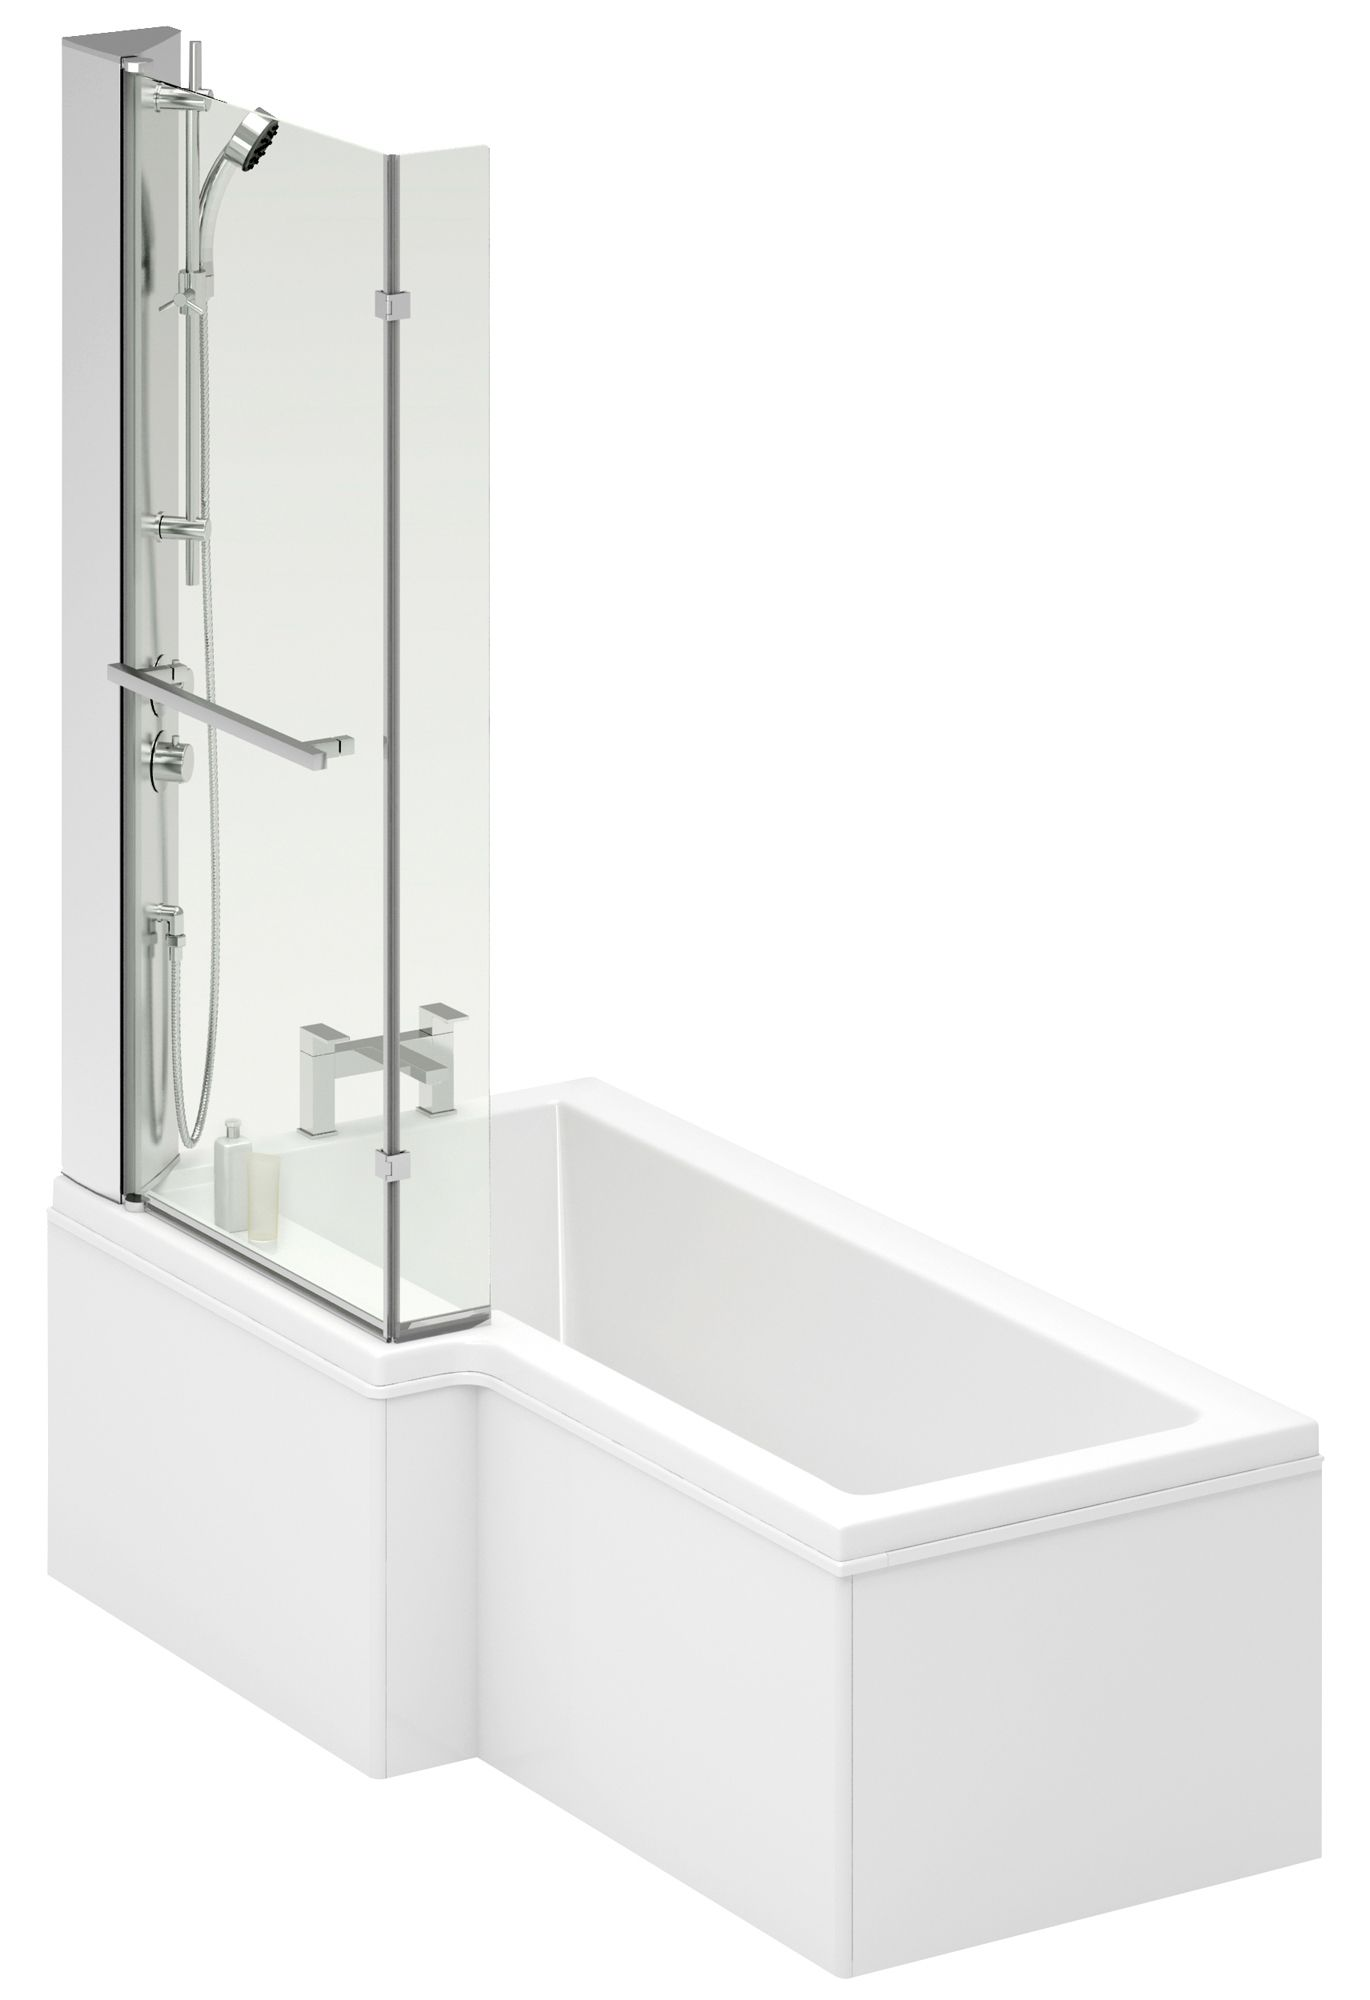 Cooke Lewis Adelphi Lh Acrylic L Shaped Shower Bath L